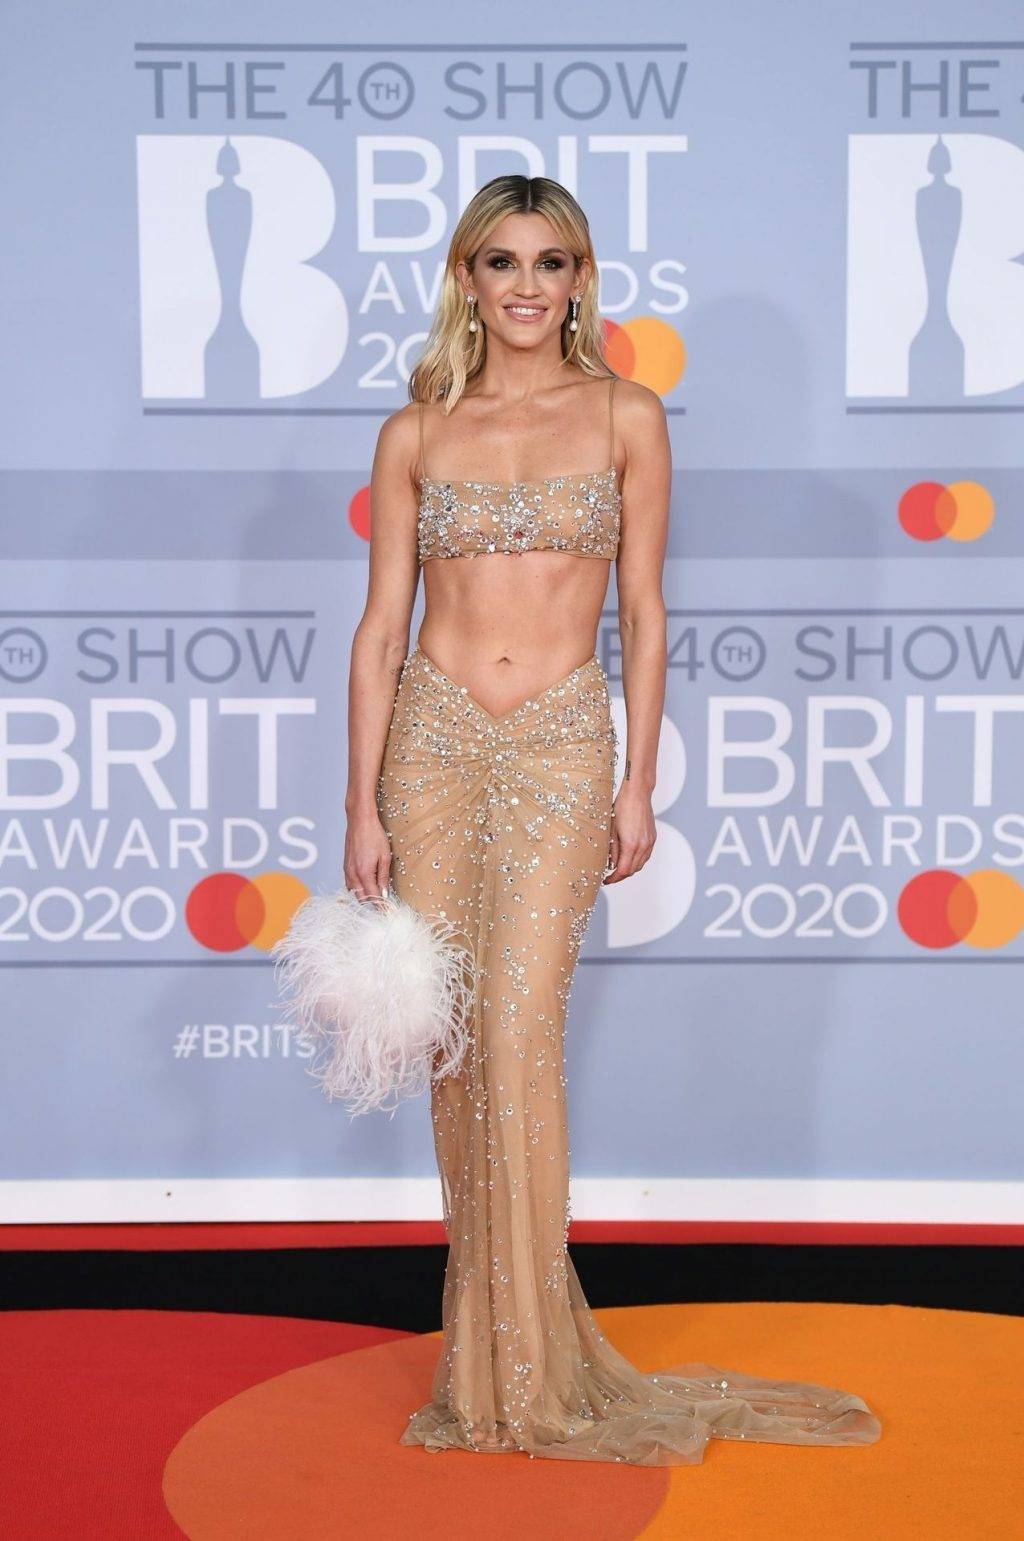 Ashley Roberts Shows Her ABS at The 2020 BRIT Awards (51 Photos)